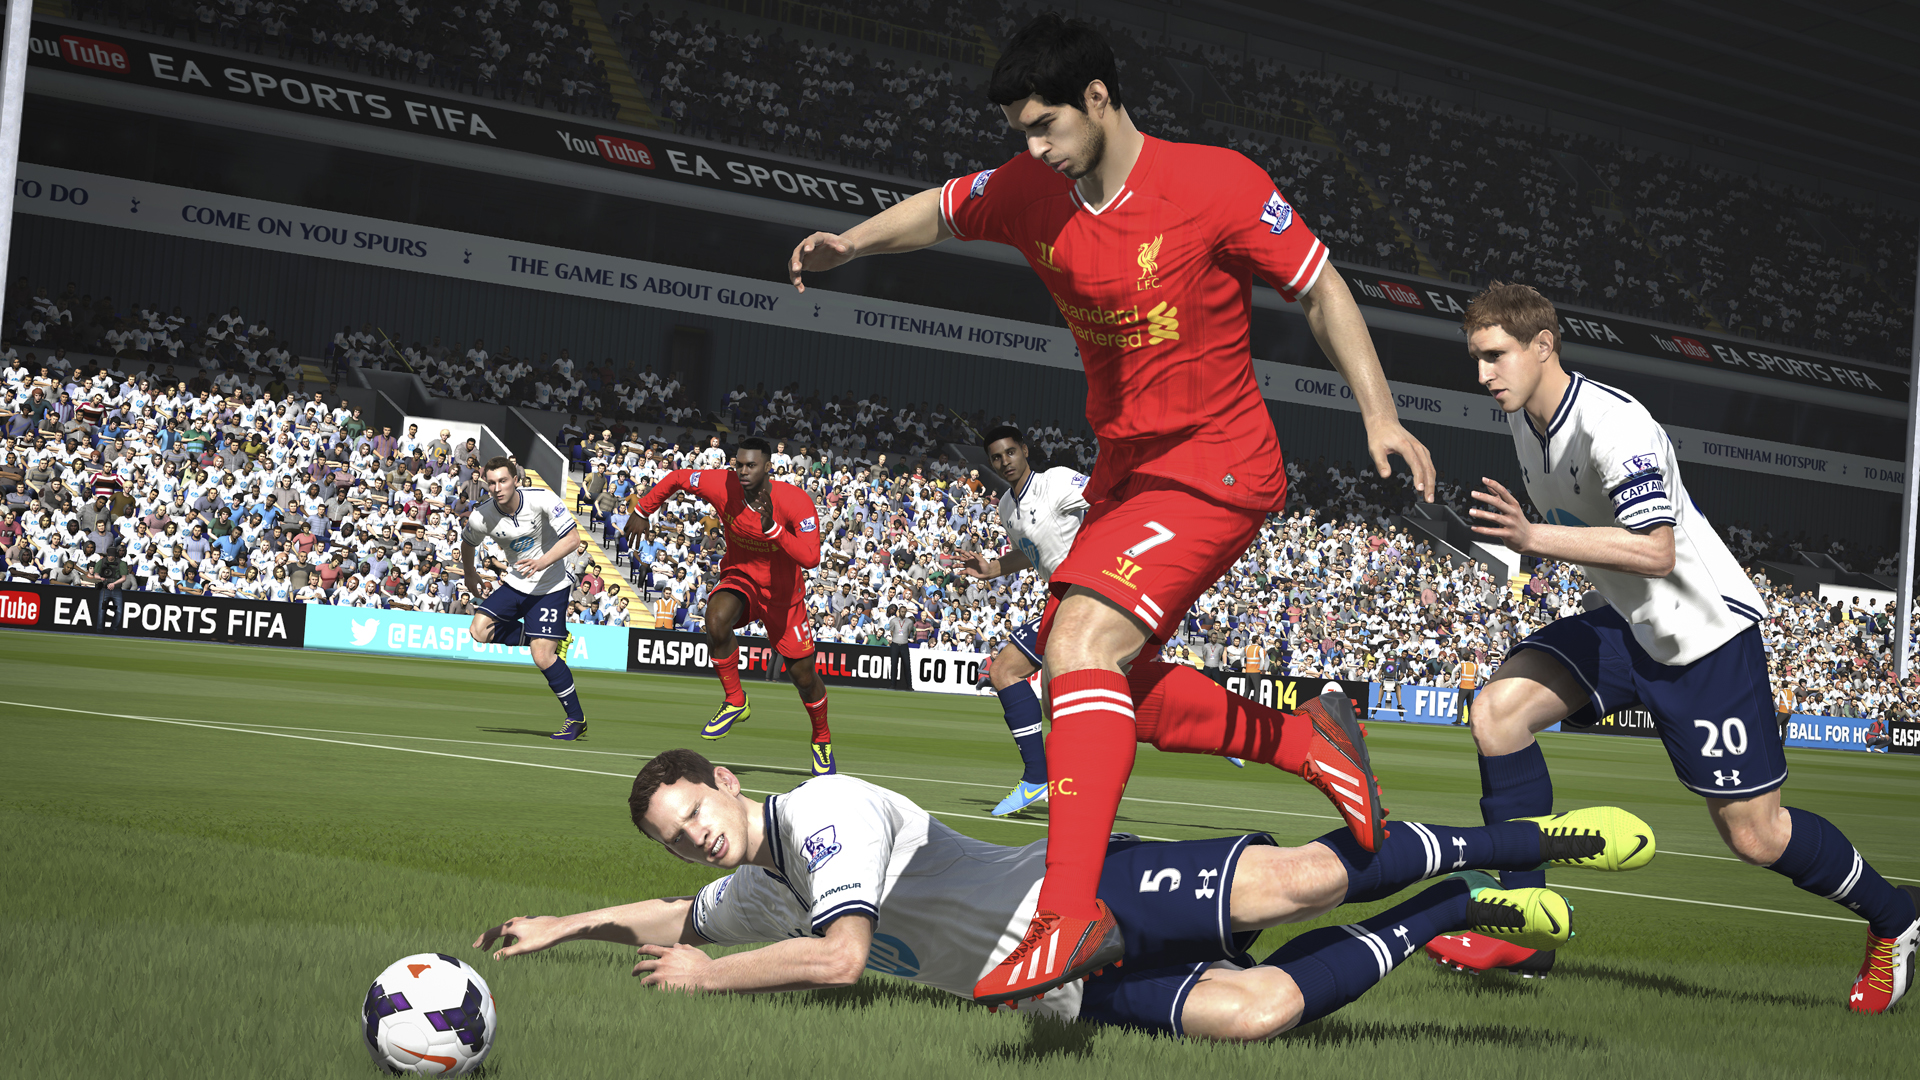 Fifa 14 full hd wallpaper and background image 1920x1080 id507705 video game fifa 14 wallpaper voltagebd Image collections